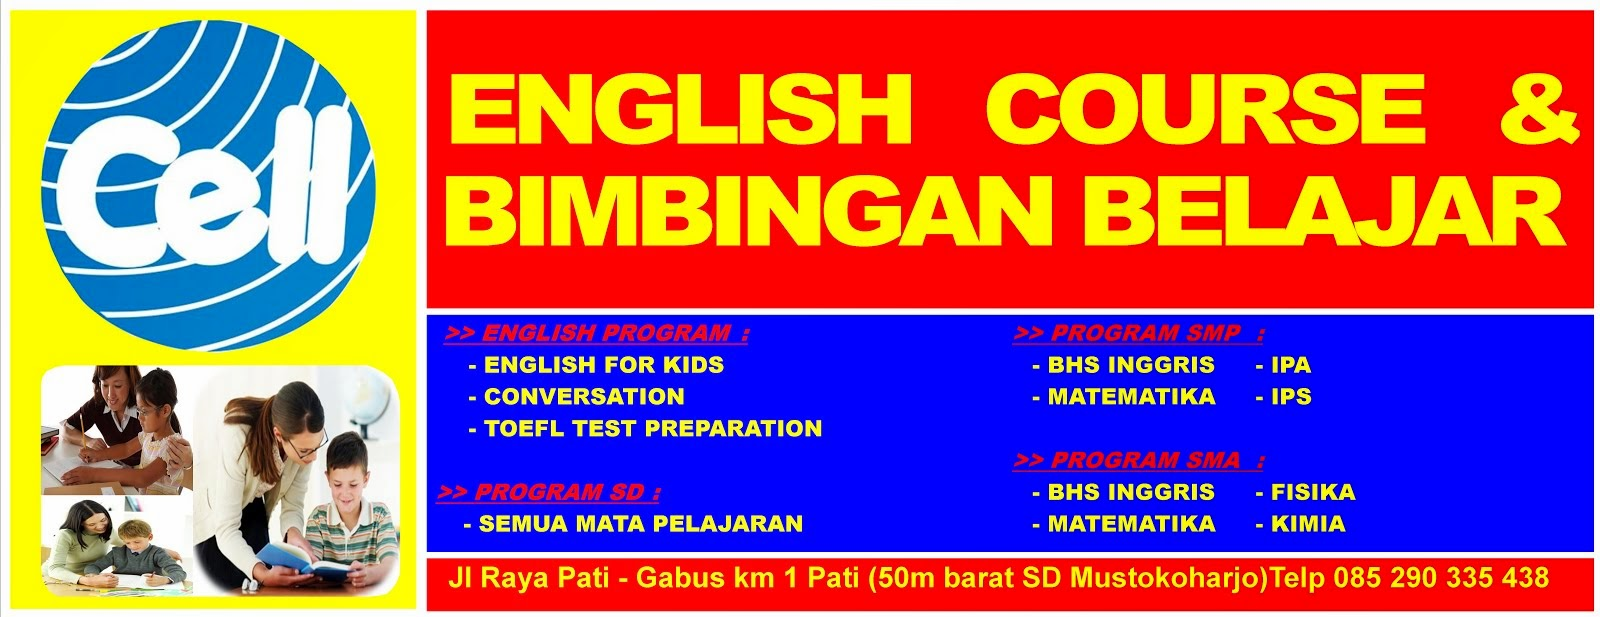 CELL ENGLISH COURSE & BIMBINGAN BELAJAR